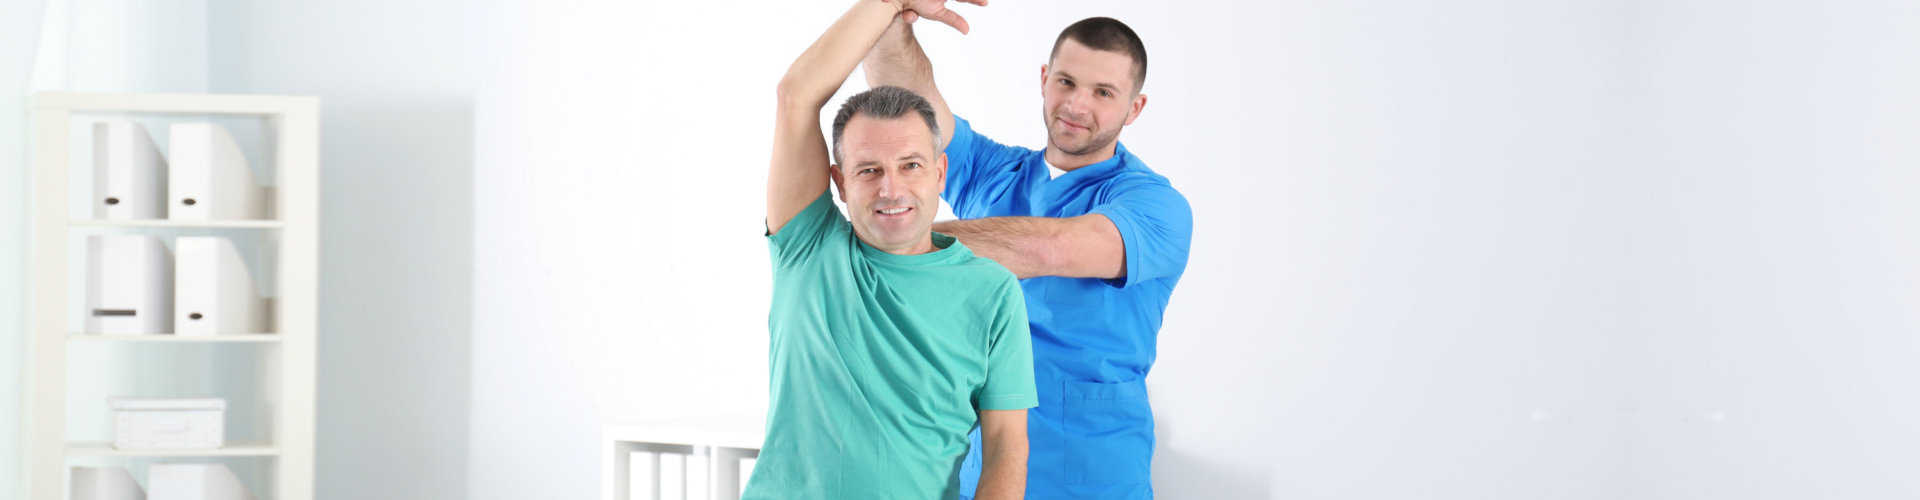 therapist doing a physical therapy to the patient